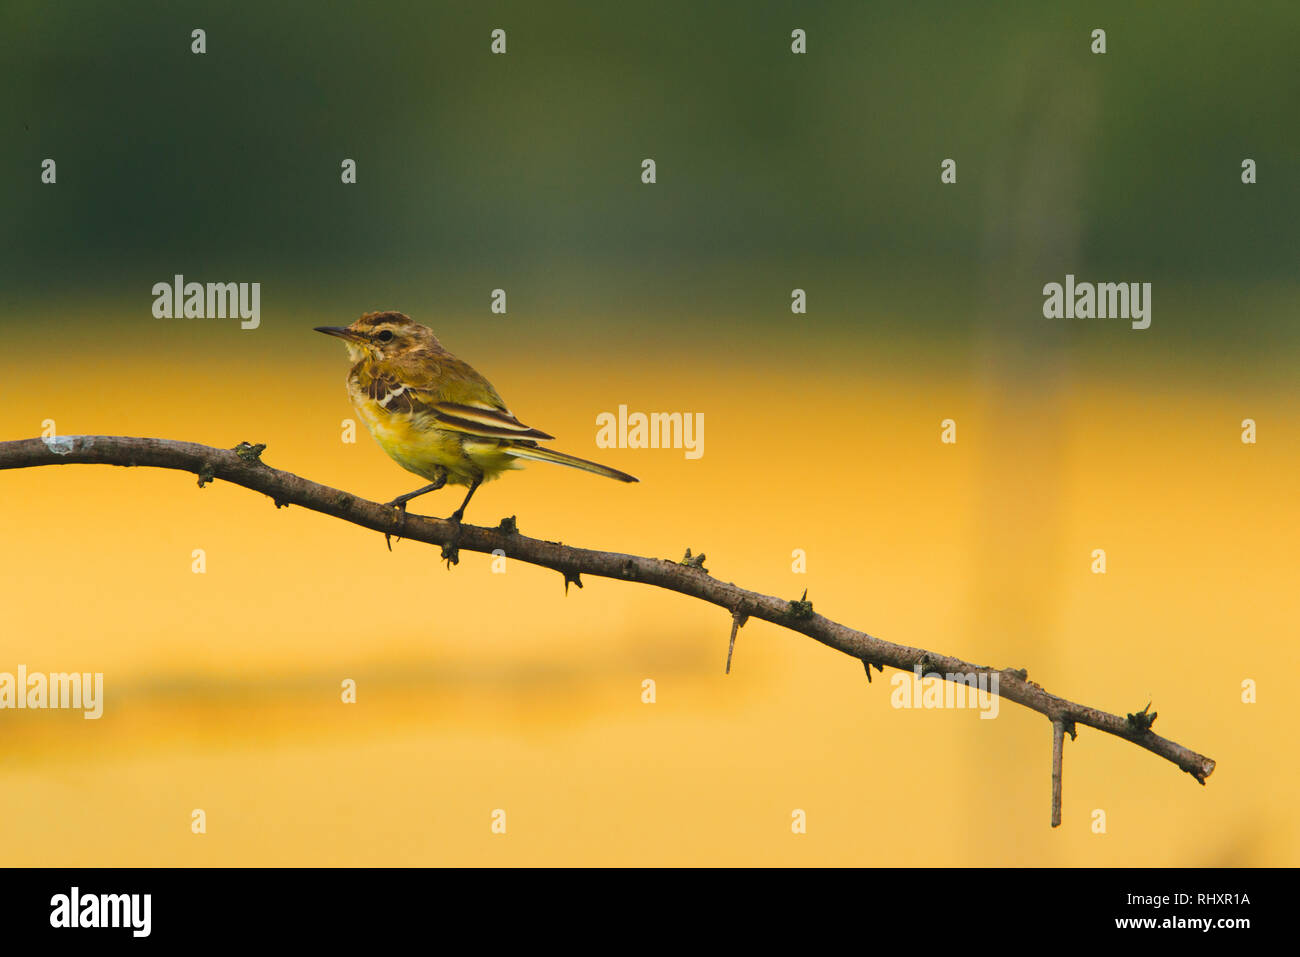 Yellow wagtail bird on a branch - Stock Image